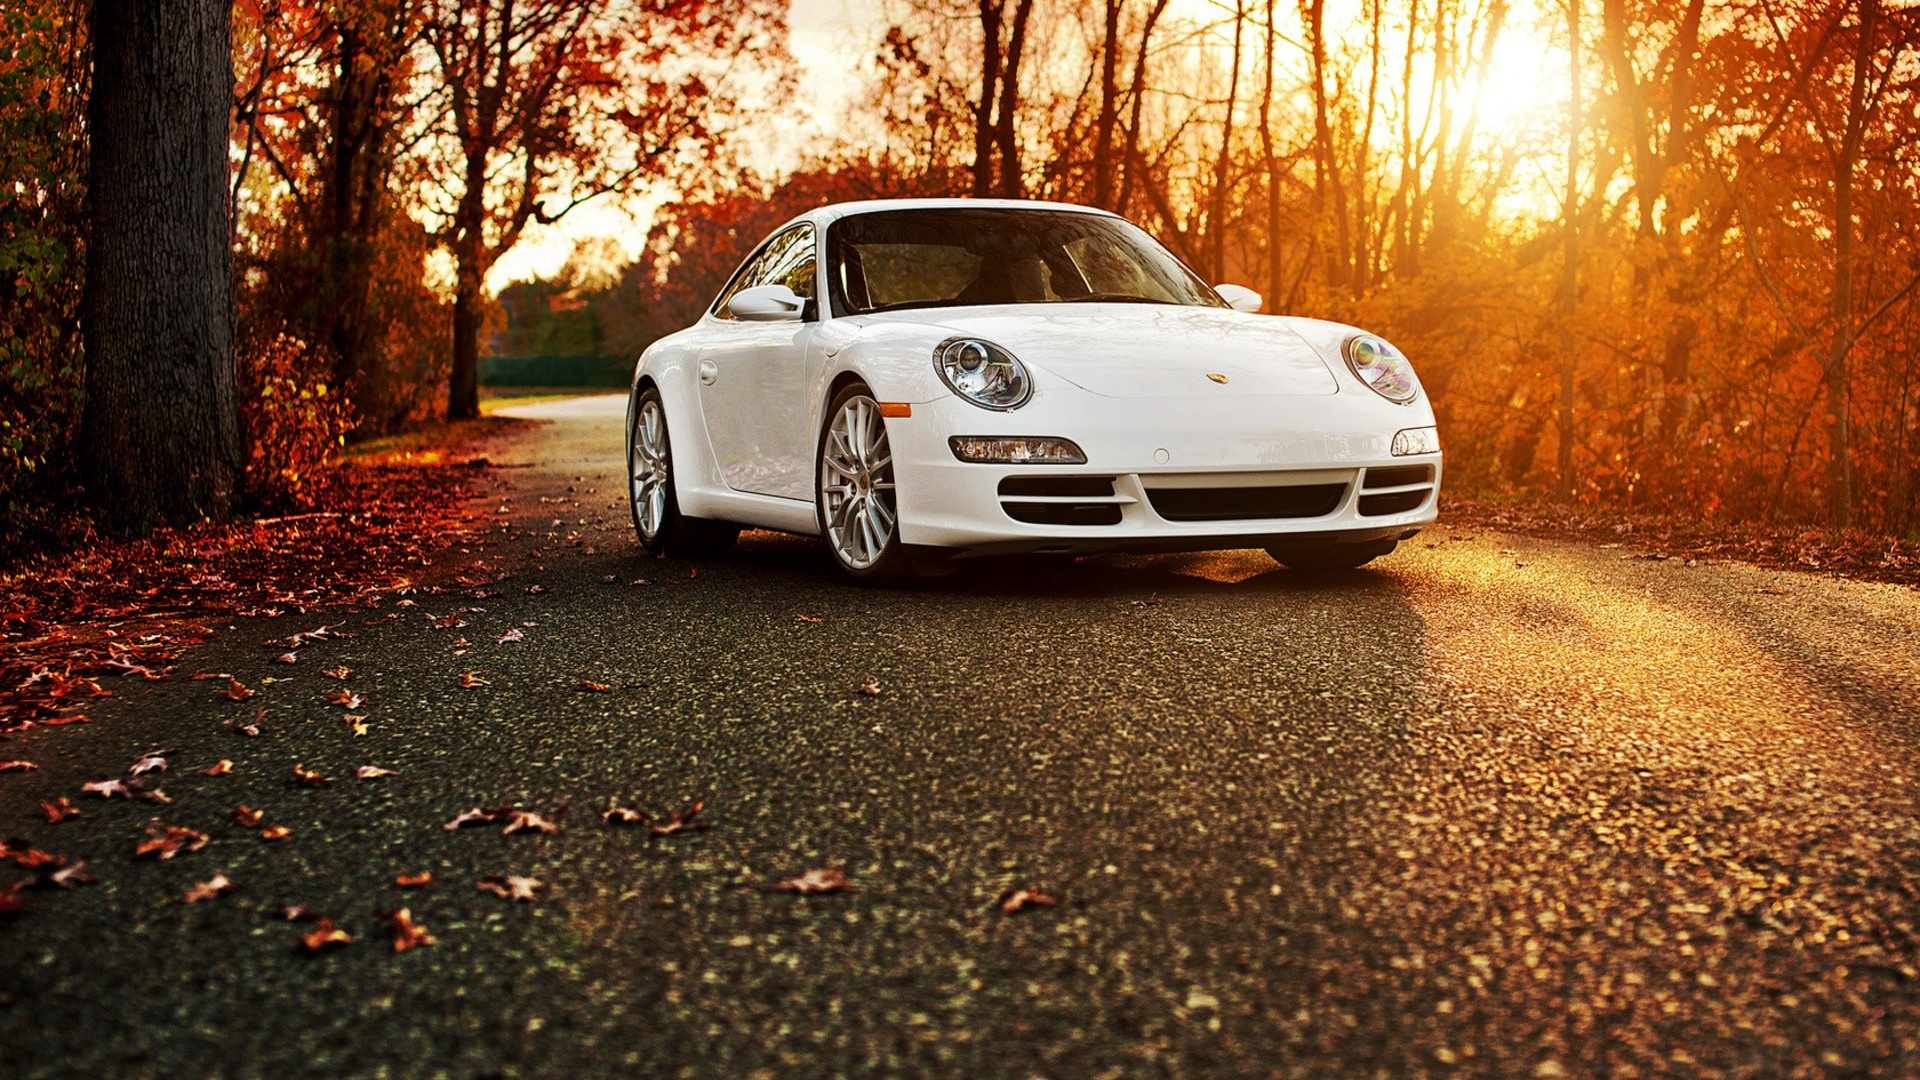 1920x1080 porsche 911 autumn how to set wallpaper on your desktop click the download link from above and set the wallpaper on the desktop from your os